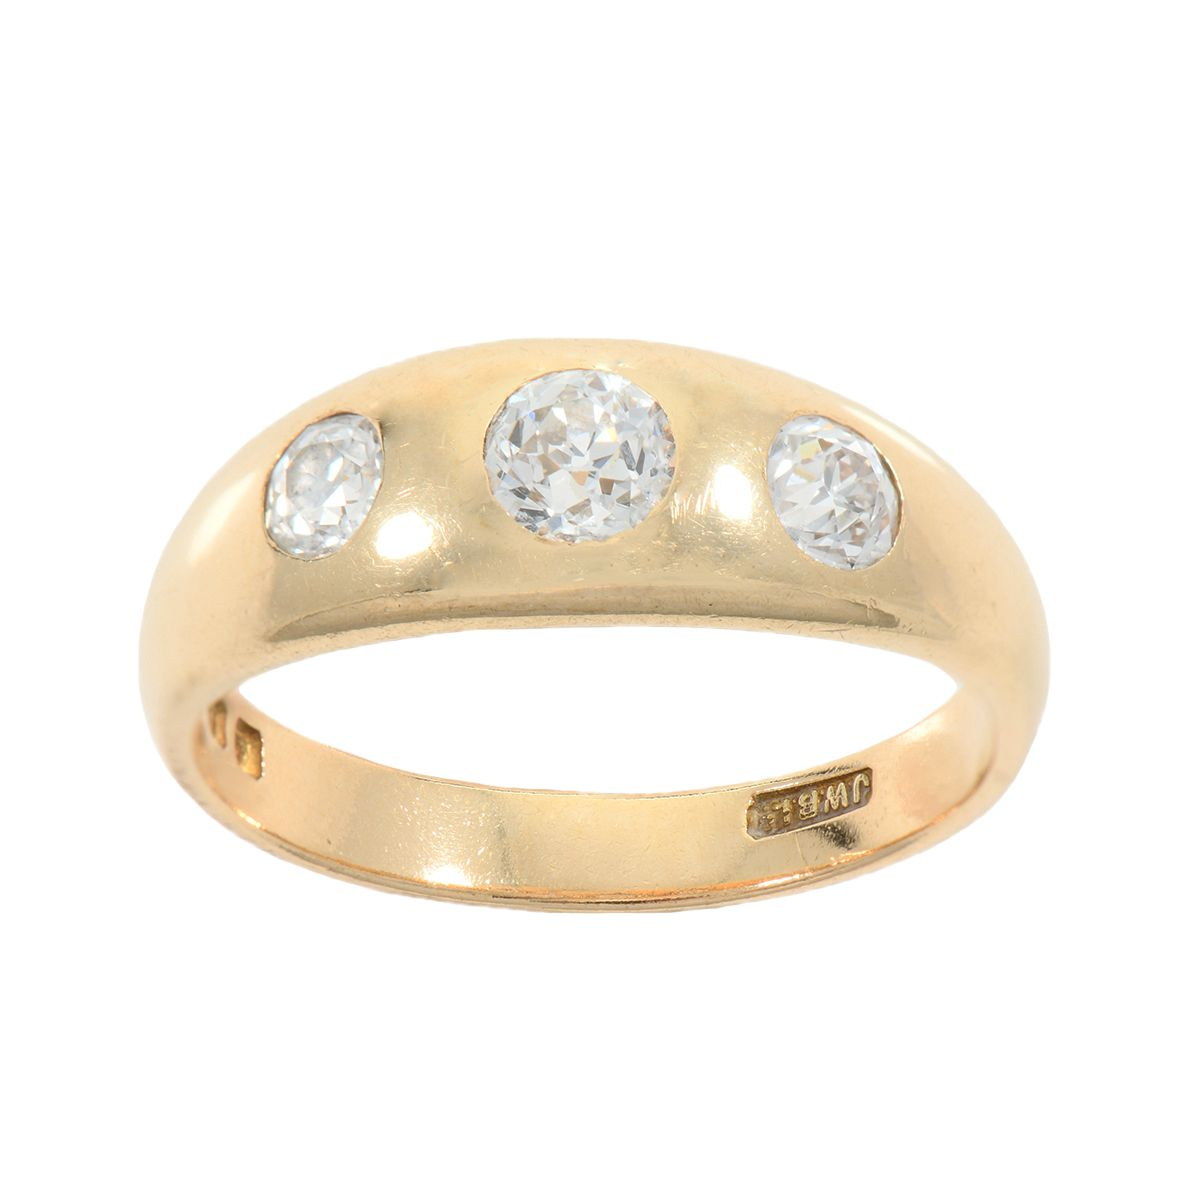 18ct Yellow Gold Old European Cut 0.80ct Diamond Trilogy Ring Size V